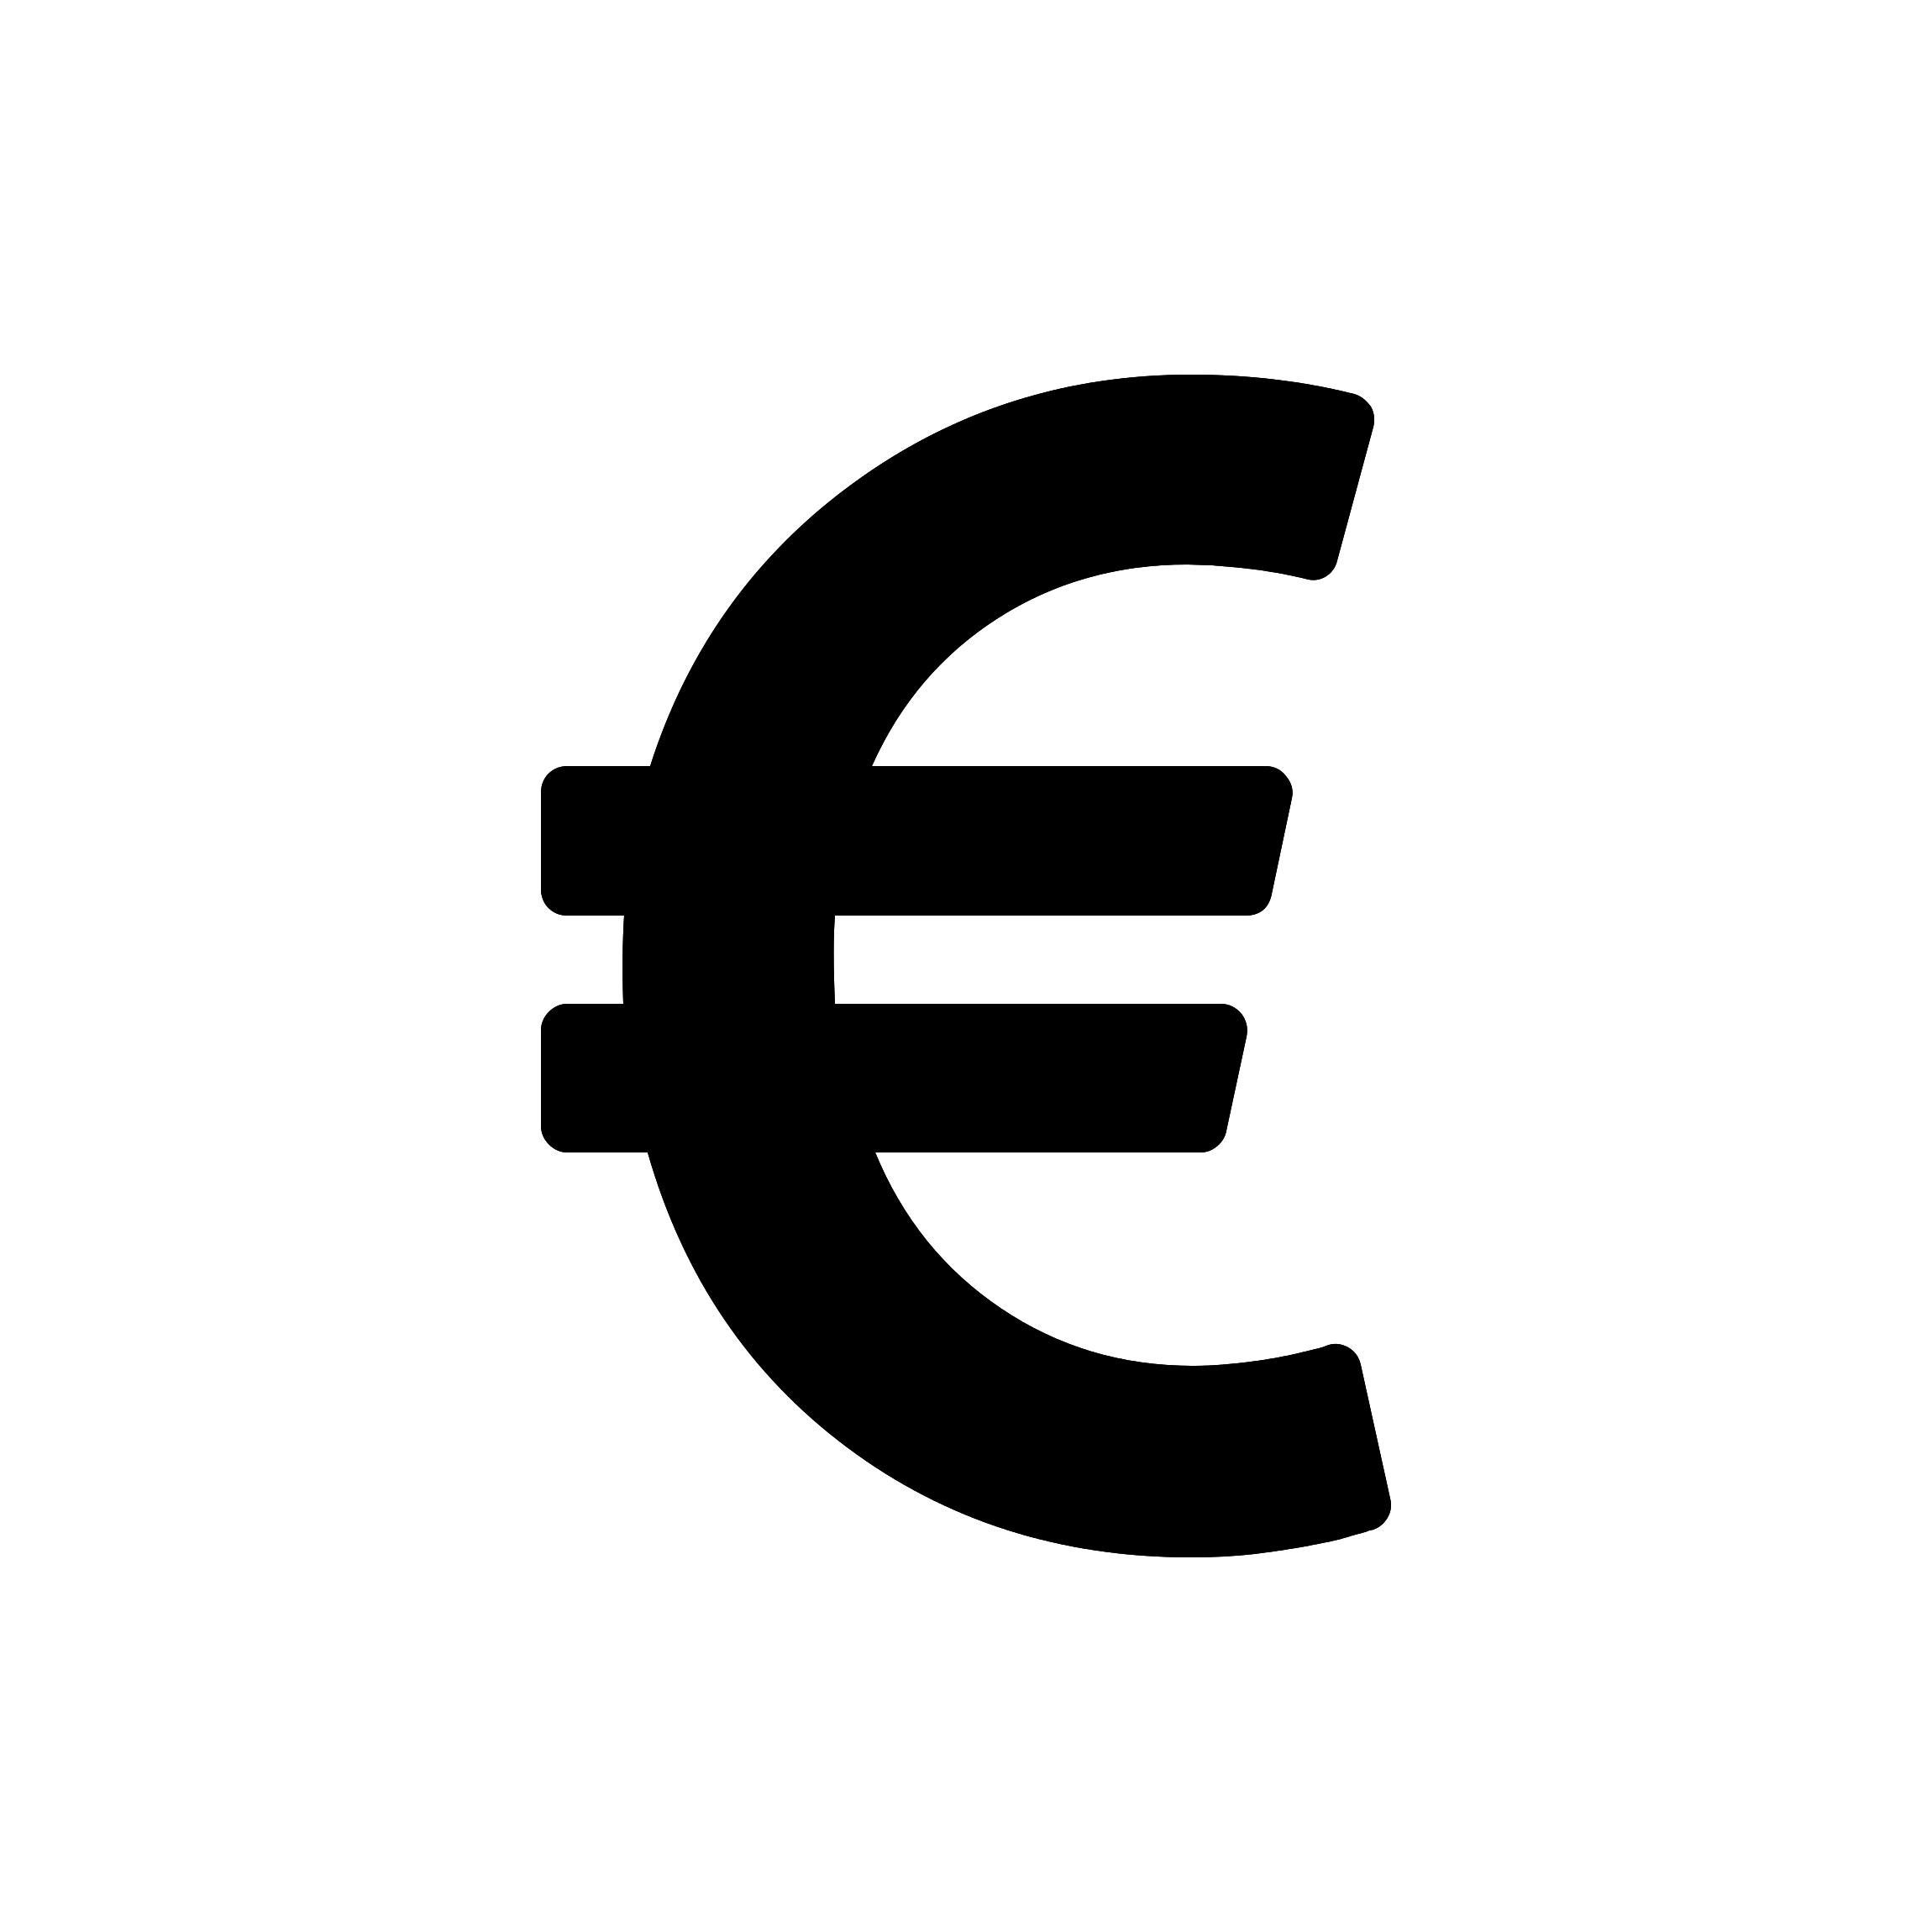 data/images/euro.png